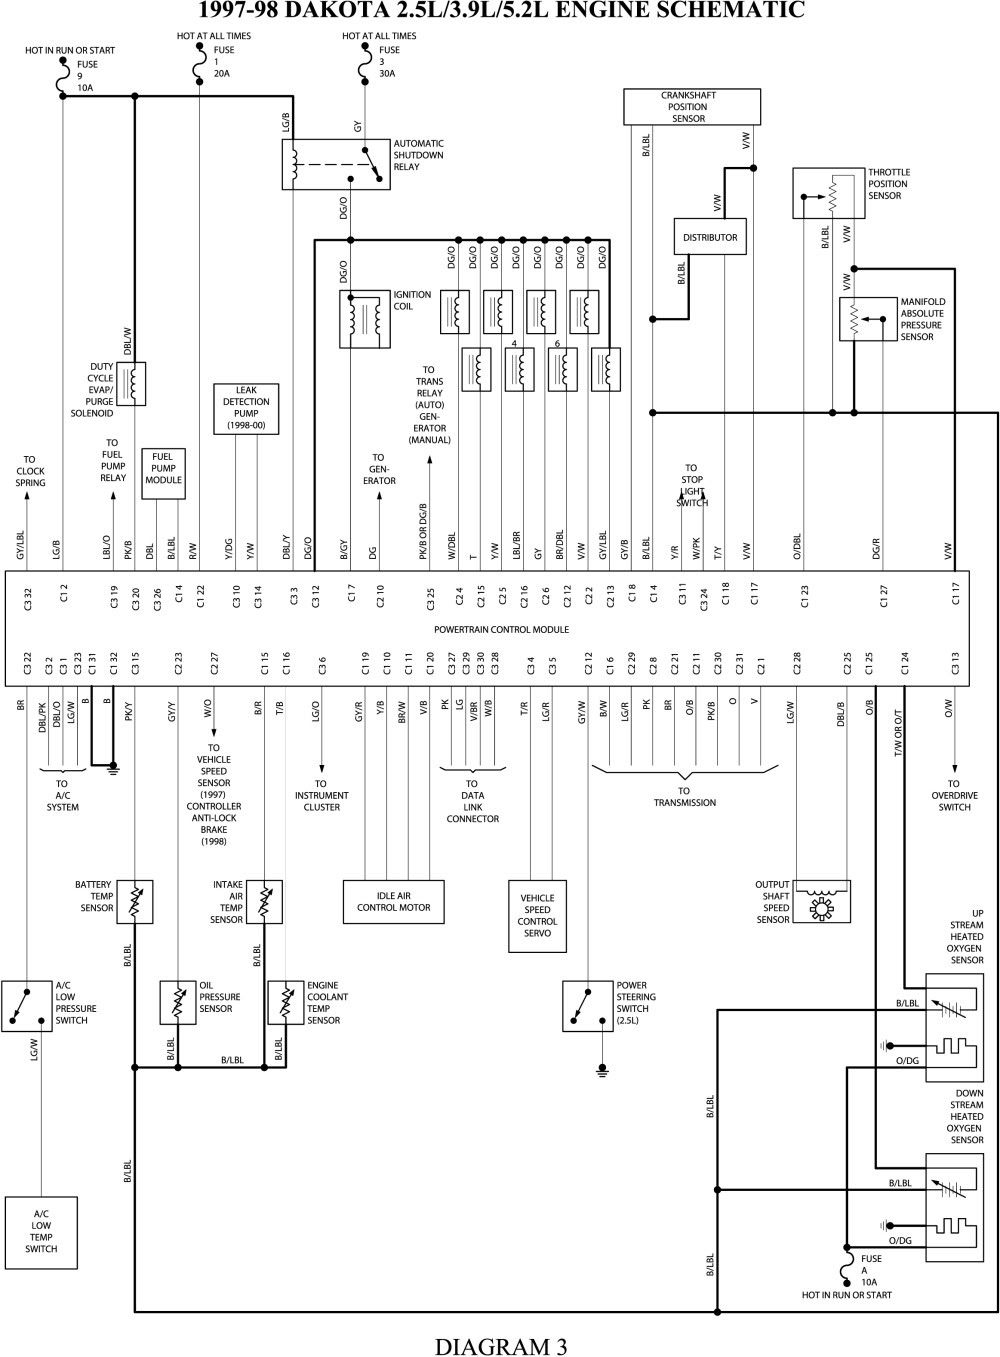 Diagram 2002 Dodge Ram 2500 Headlight Wiring Diagram Full Version Hd Quality Wiring Diagram Grammarforchickens Euganeacup It